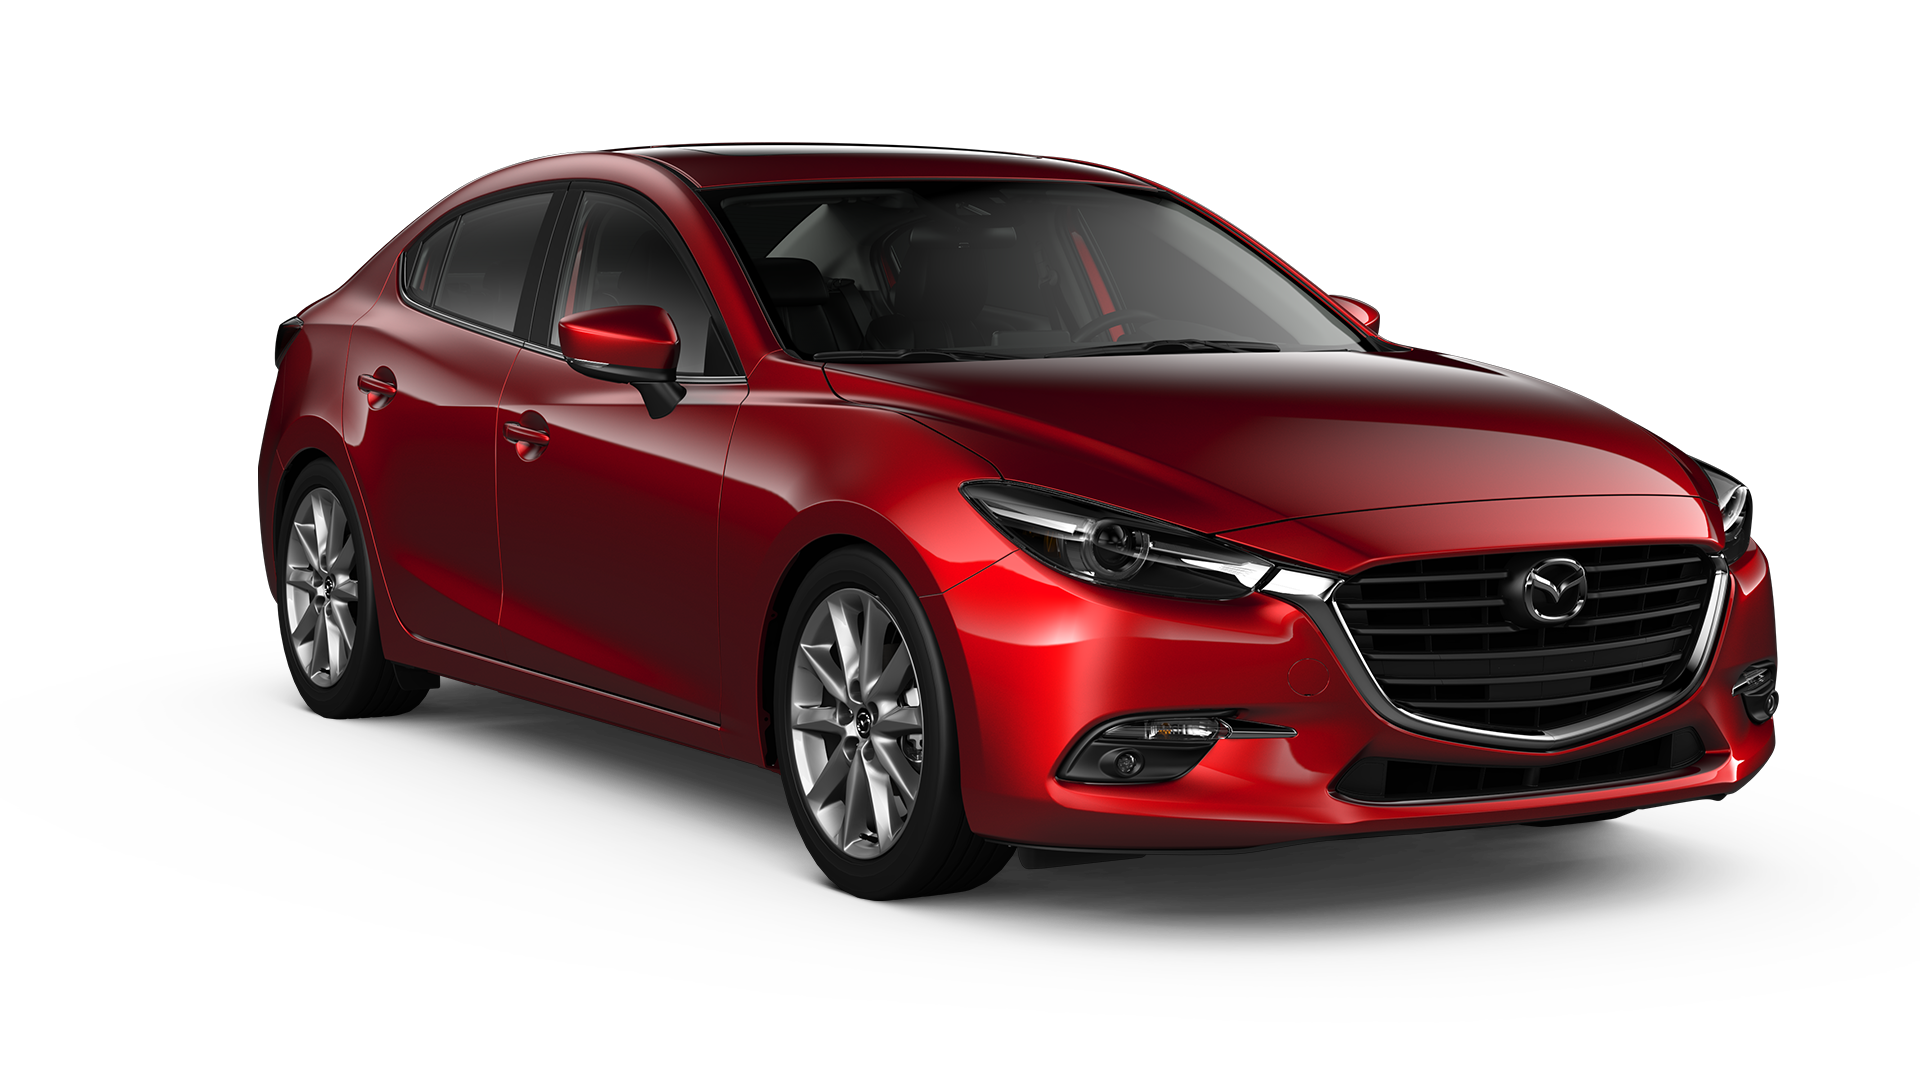 2018 Mazda Vehicles New Car Release Date And Review 2018 Amanda Felicia